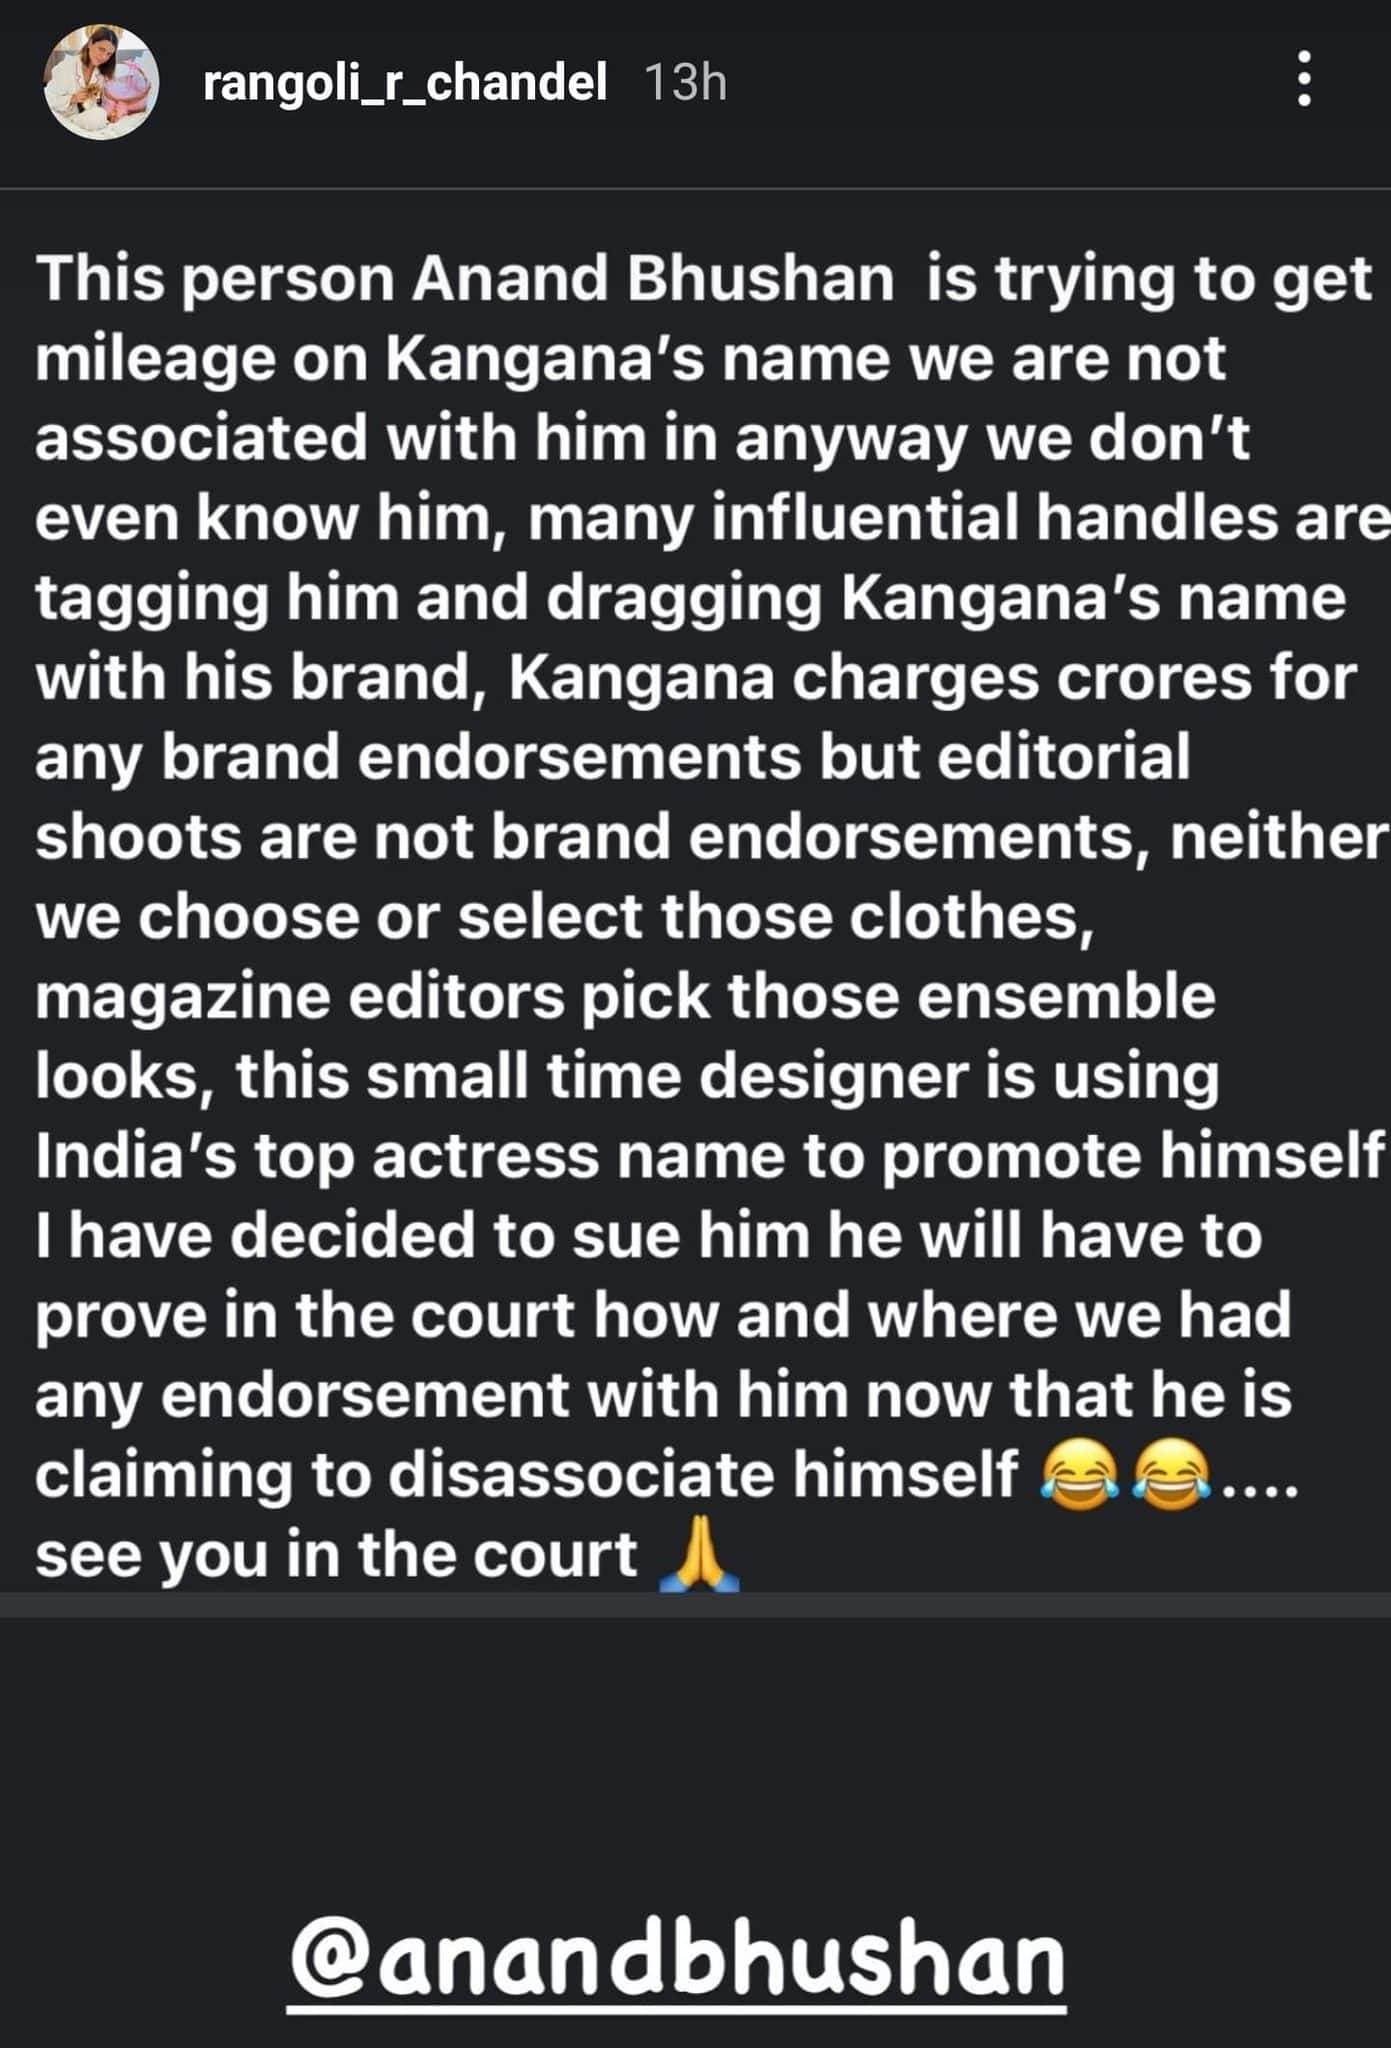 Kangana Ranaut's Sister And Manager Rangoli Threatens To Sue Designer Anand Bhushan, Claims He Is Using Actress' Name For Mileage